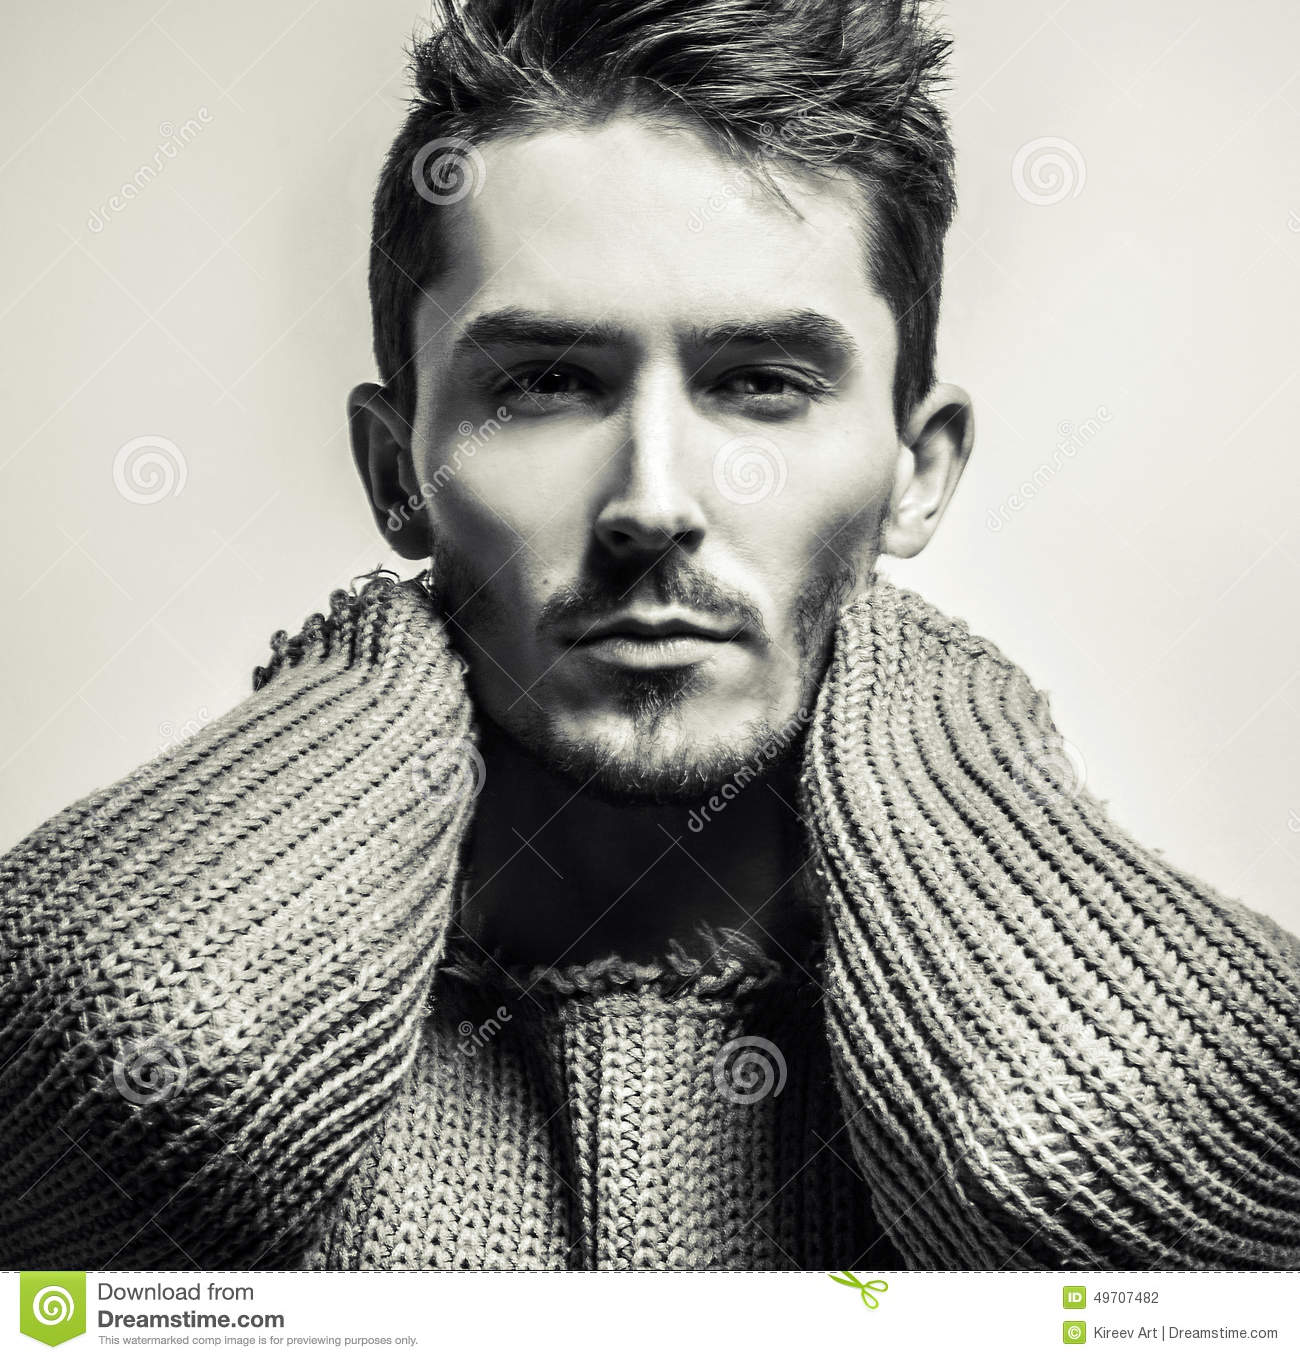 Black white studio portrait of young handsome man in knitted sweater